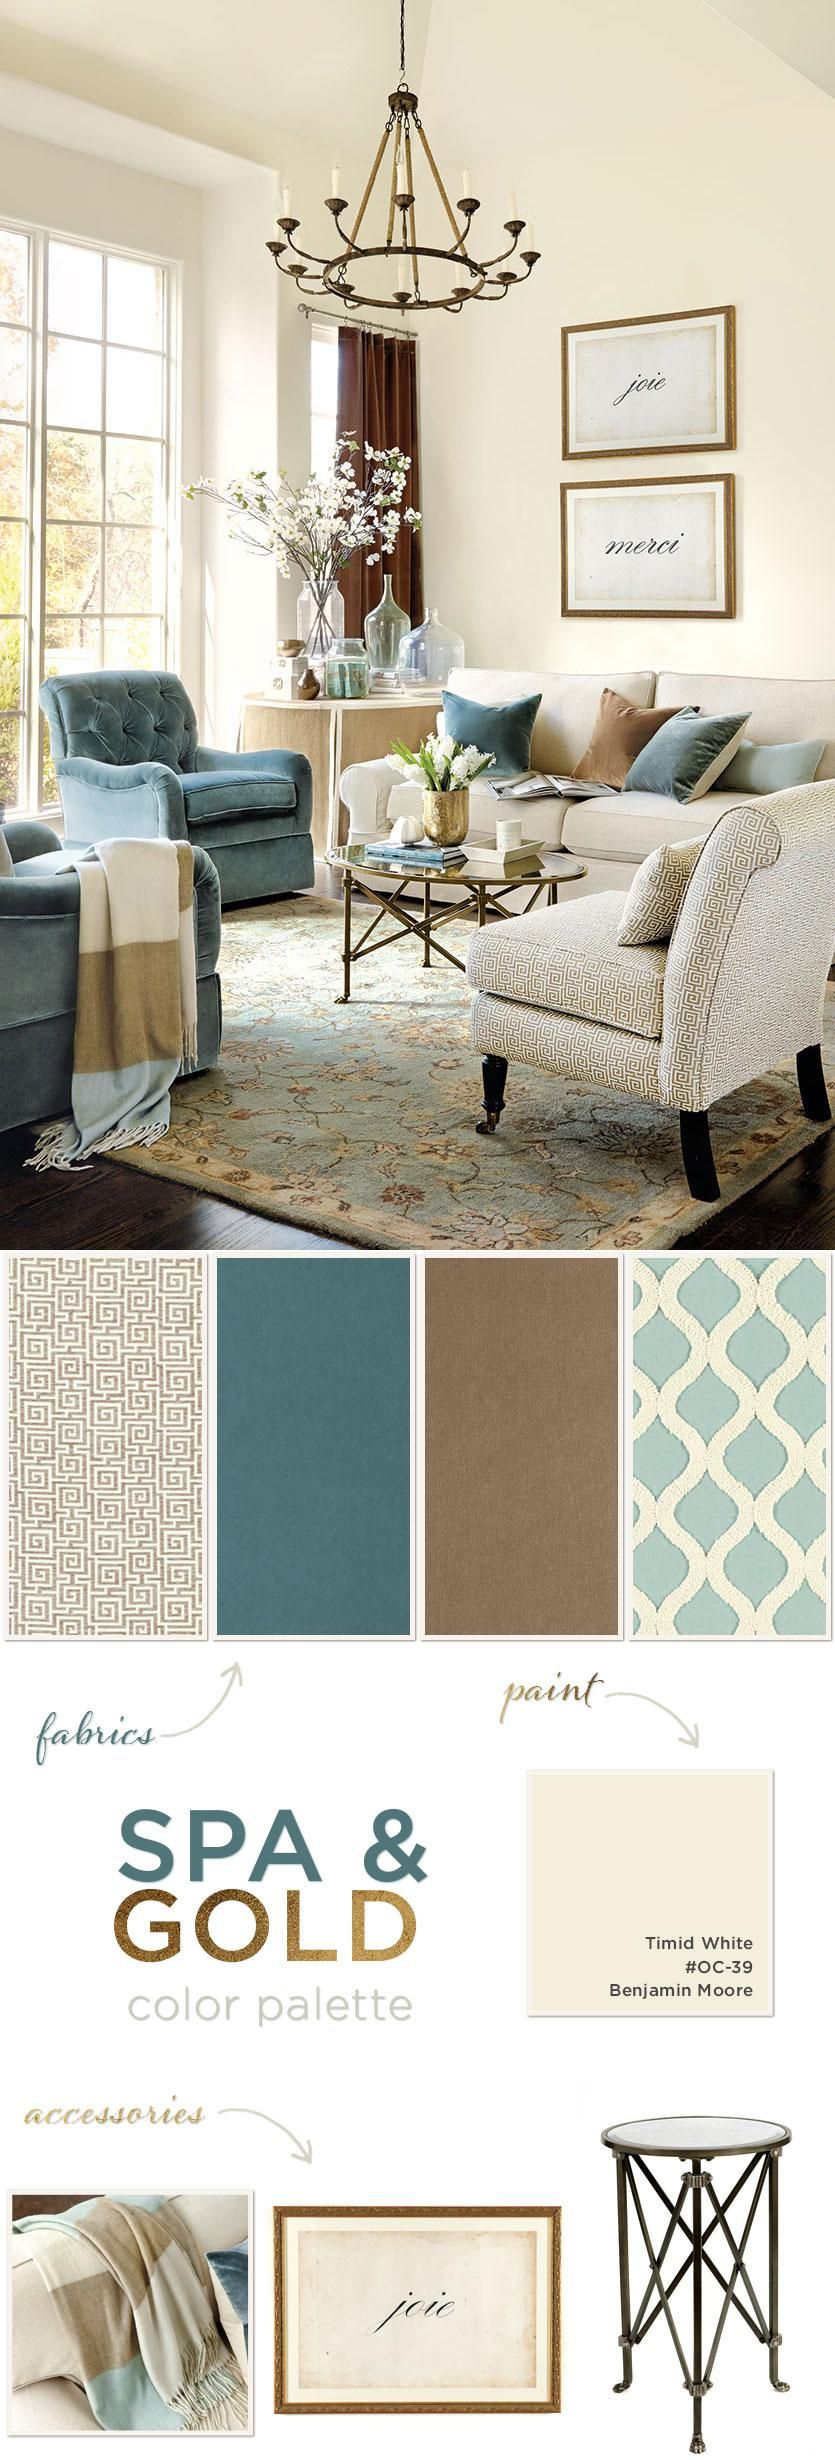 warm color schemes for living rooms simple decorating ideas a small room inspired palettes spring 2014 gold gives spa blue cozy warmth